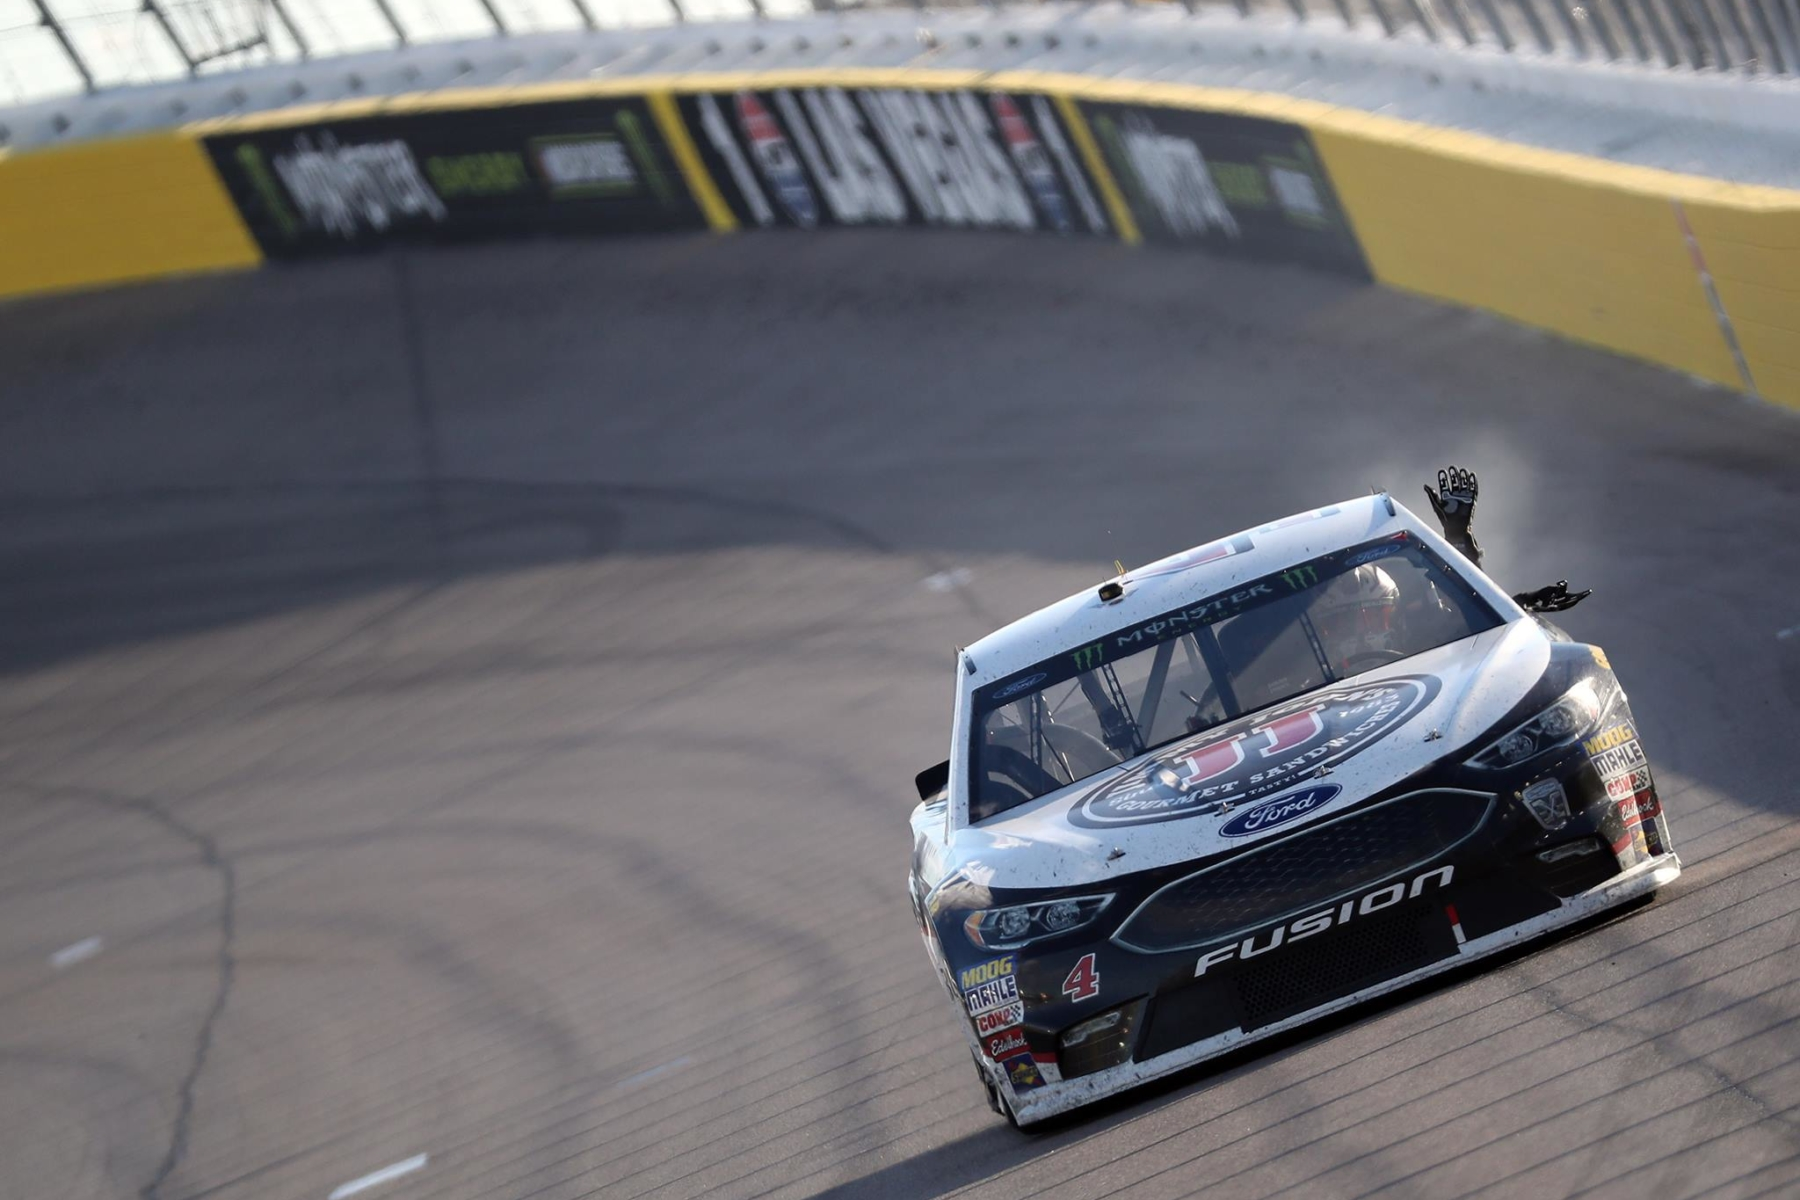 Kevin Harvick wins at Las Vegas Motor Speedway - NASCAR